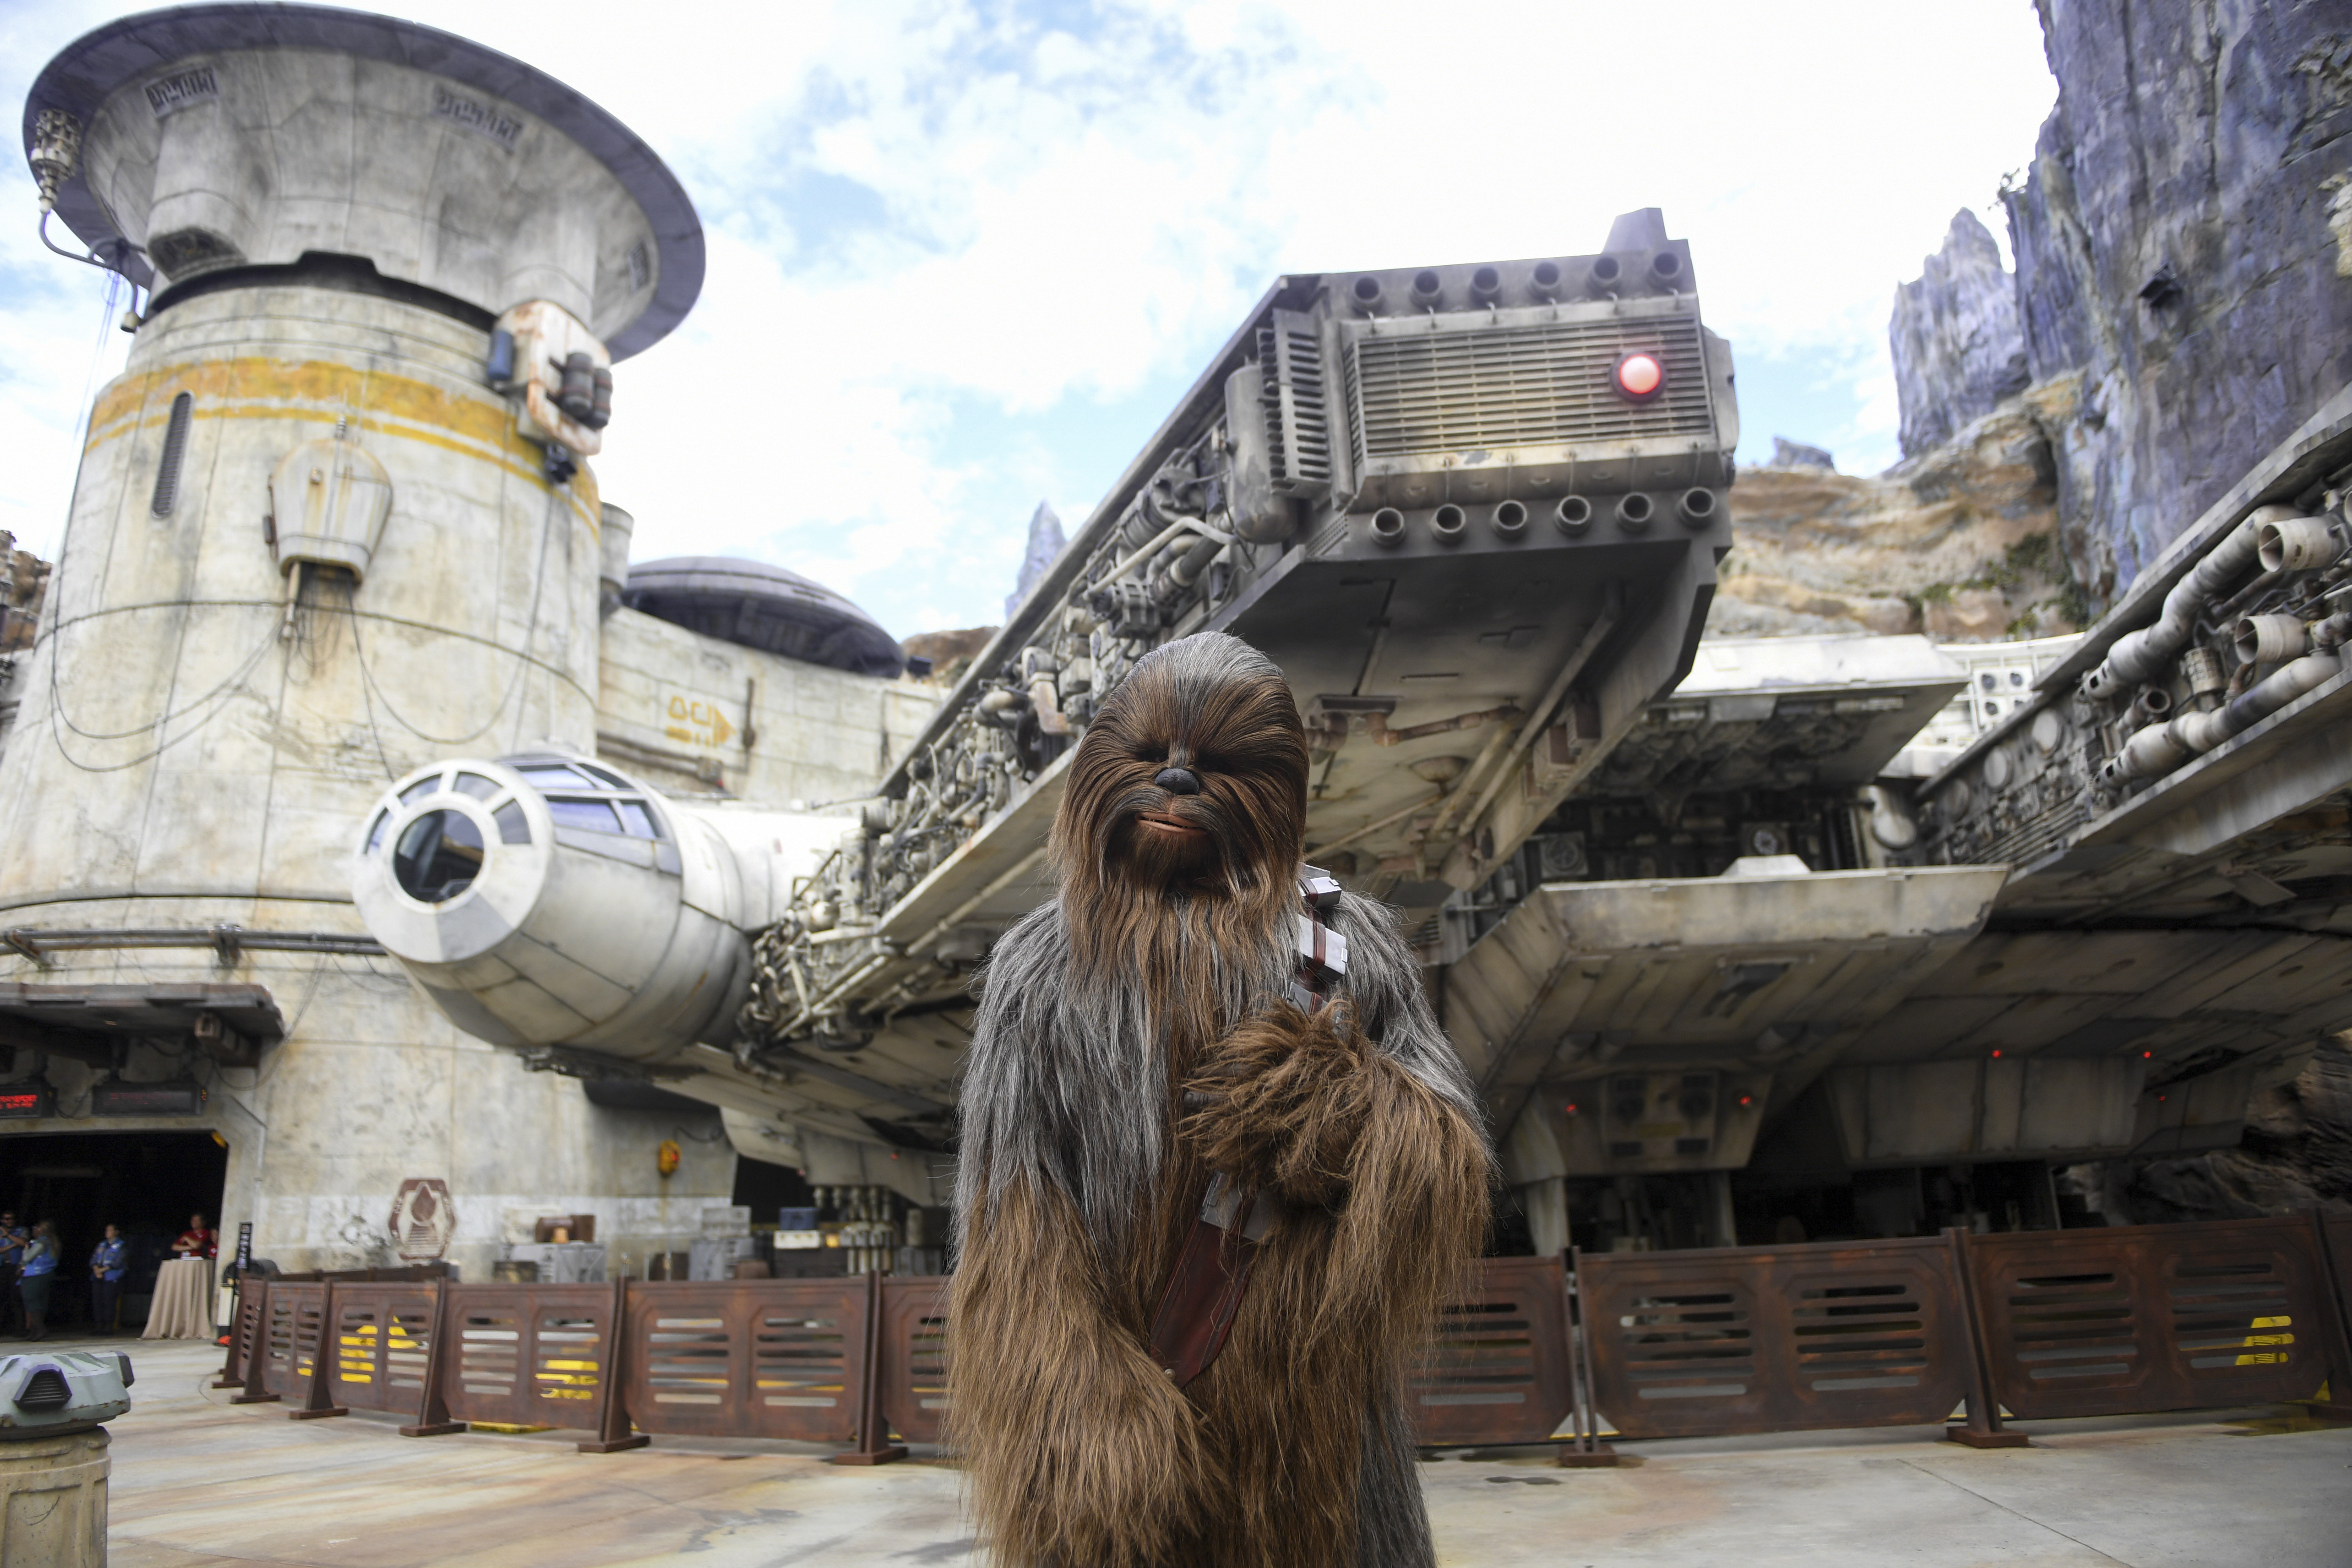 Disney S Star Wars Land Opened As Dorian Approached Keeping